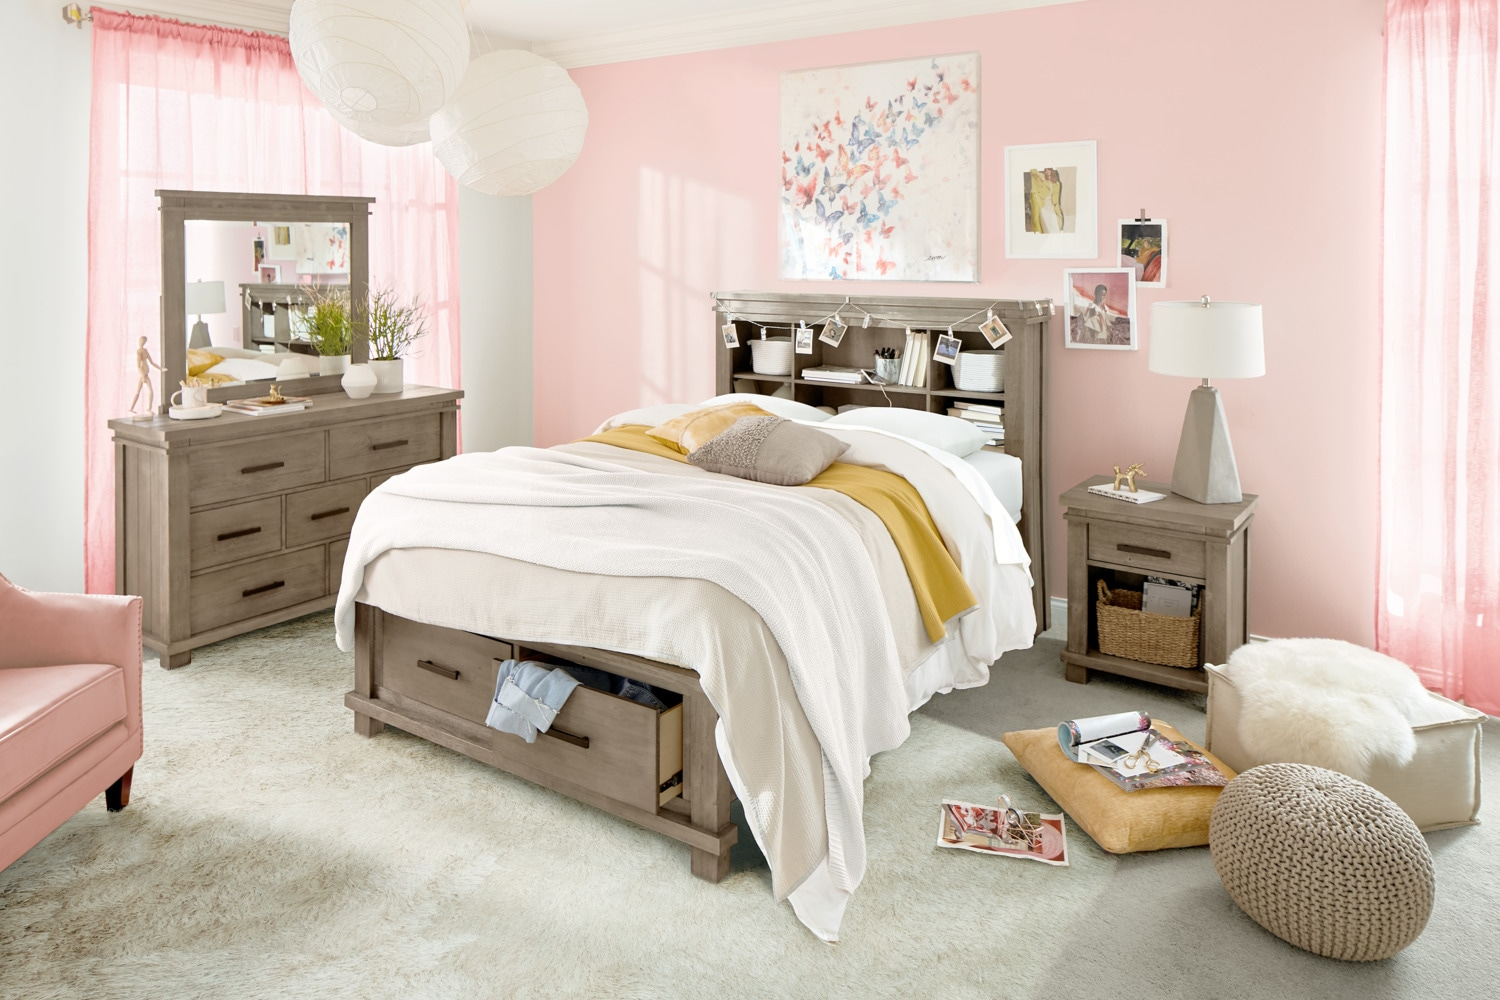 Swell The Tribeca Youth Bedroom Collection Value City Furniture Interior Design Ideas Helimdqseriescom